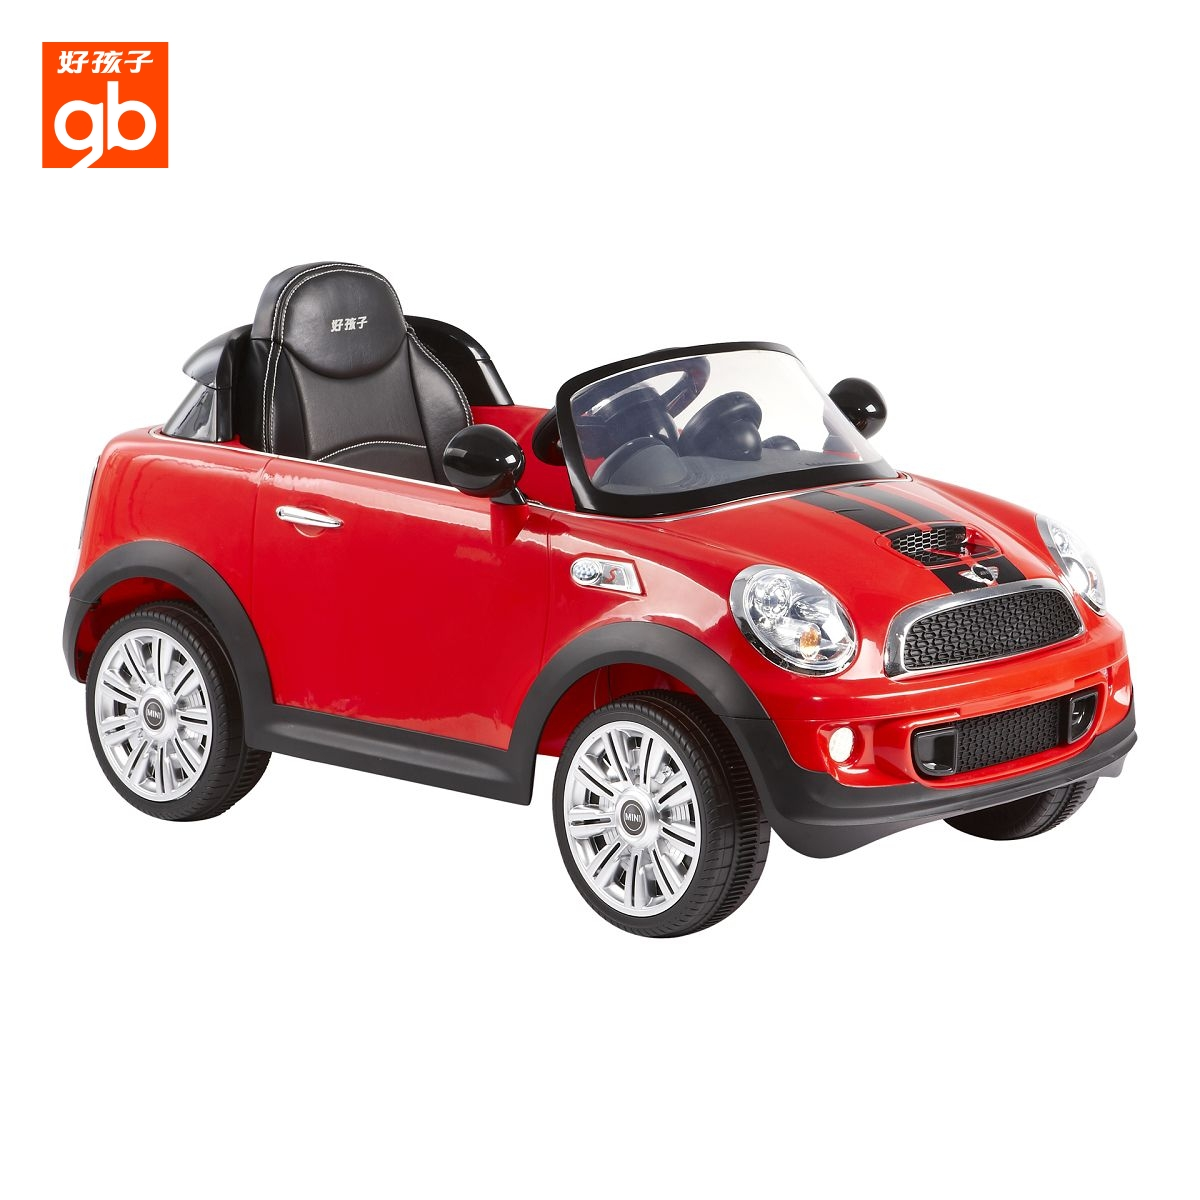 gb child four wheel electric vehicle remote control car minicooper toys baby ride on car w446q b free shipping in ride on cars from toys hobbies on